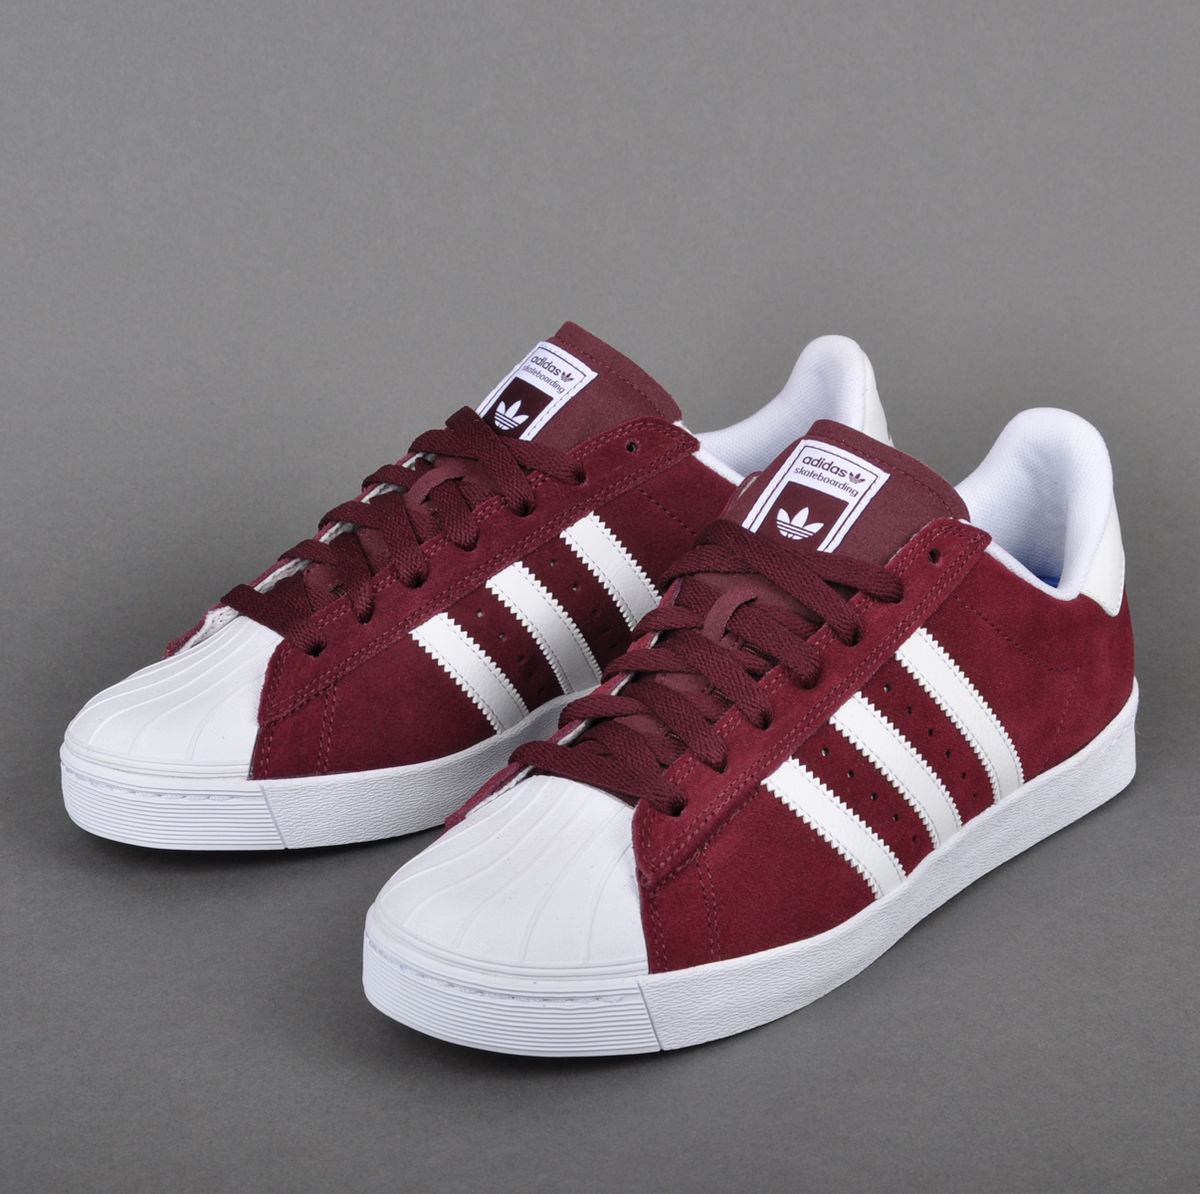 Cheap Adidas superstar vulc adv bordeaux Couverture Barbedet